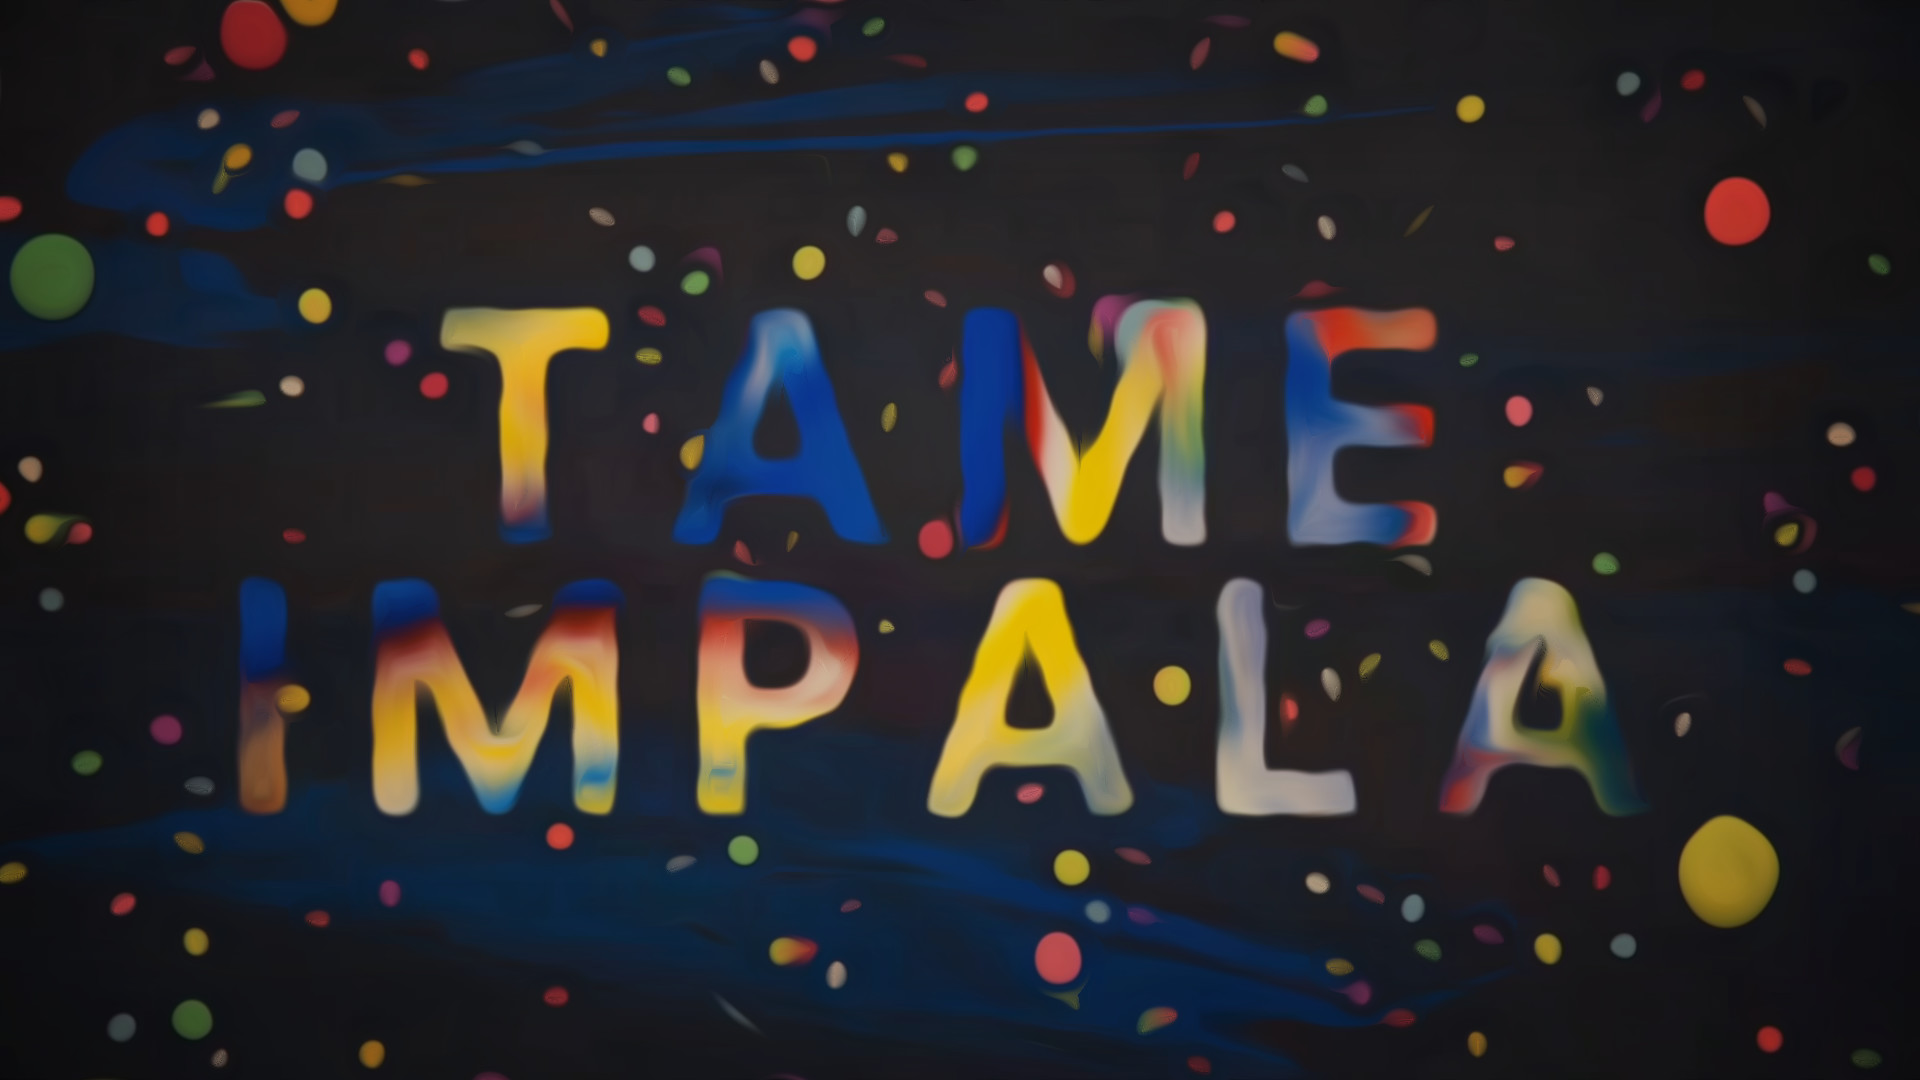 Tame Impala Wallpapers Wallpapertag